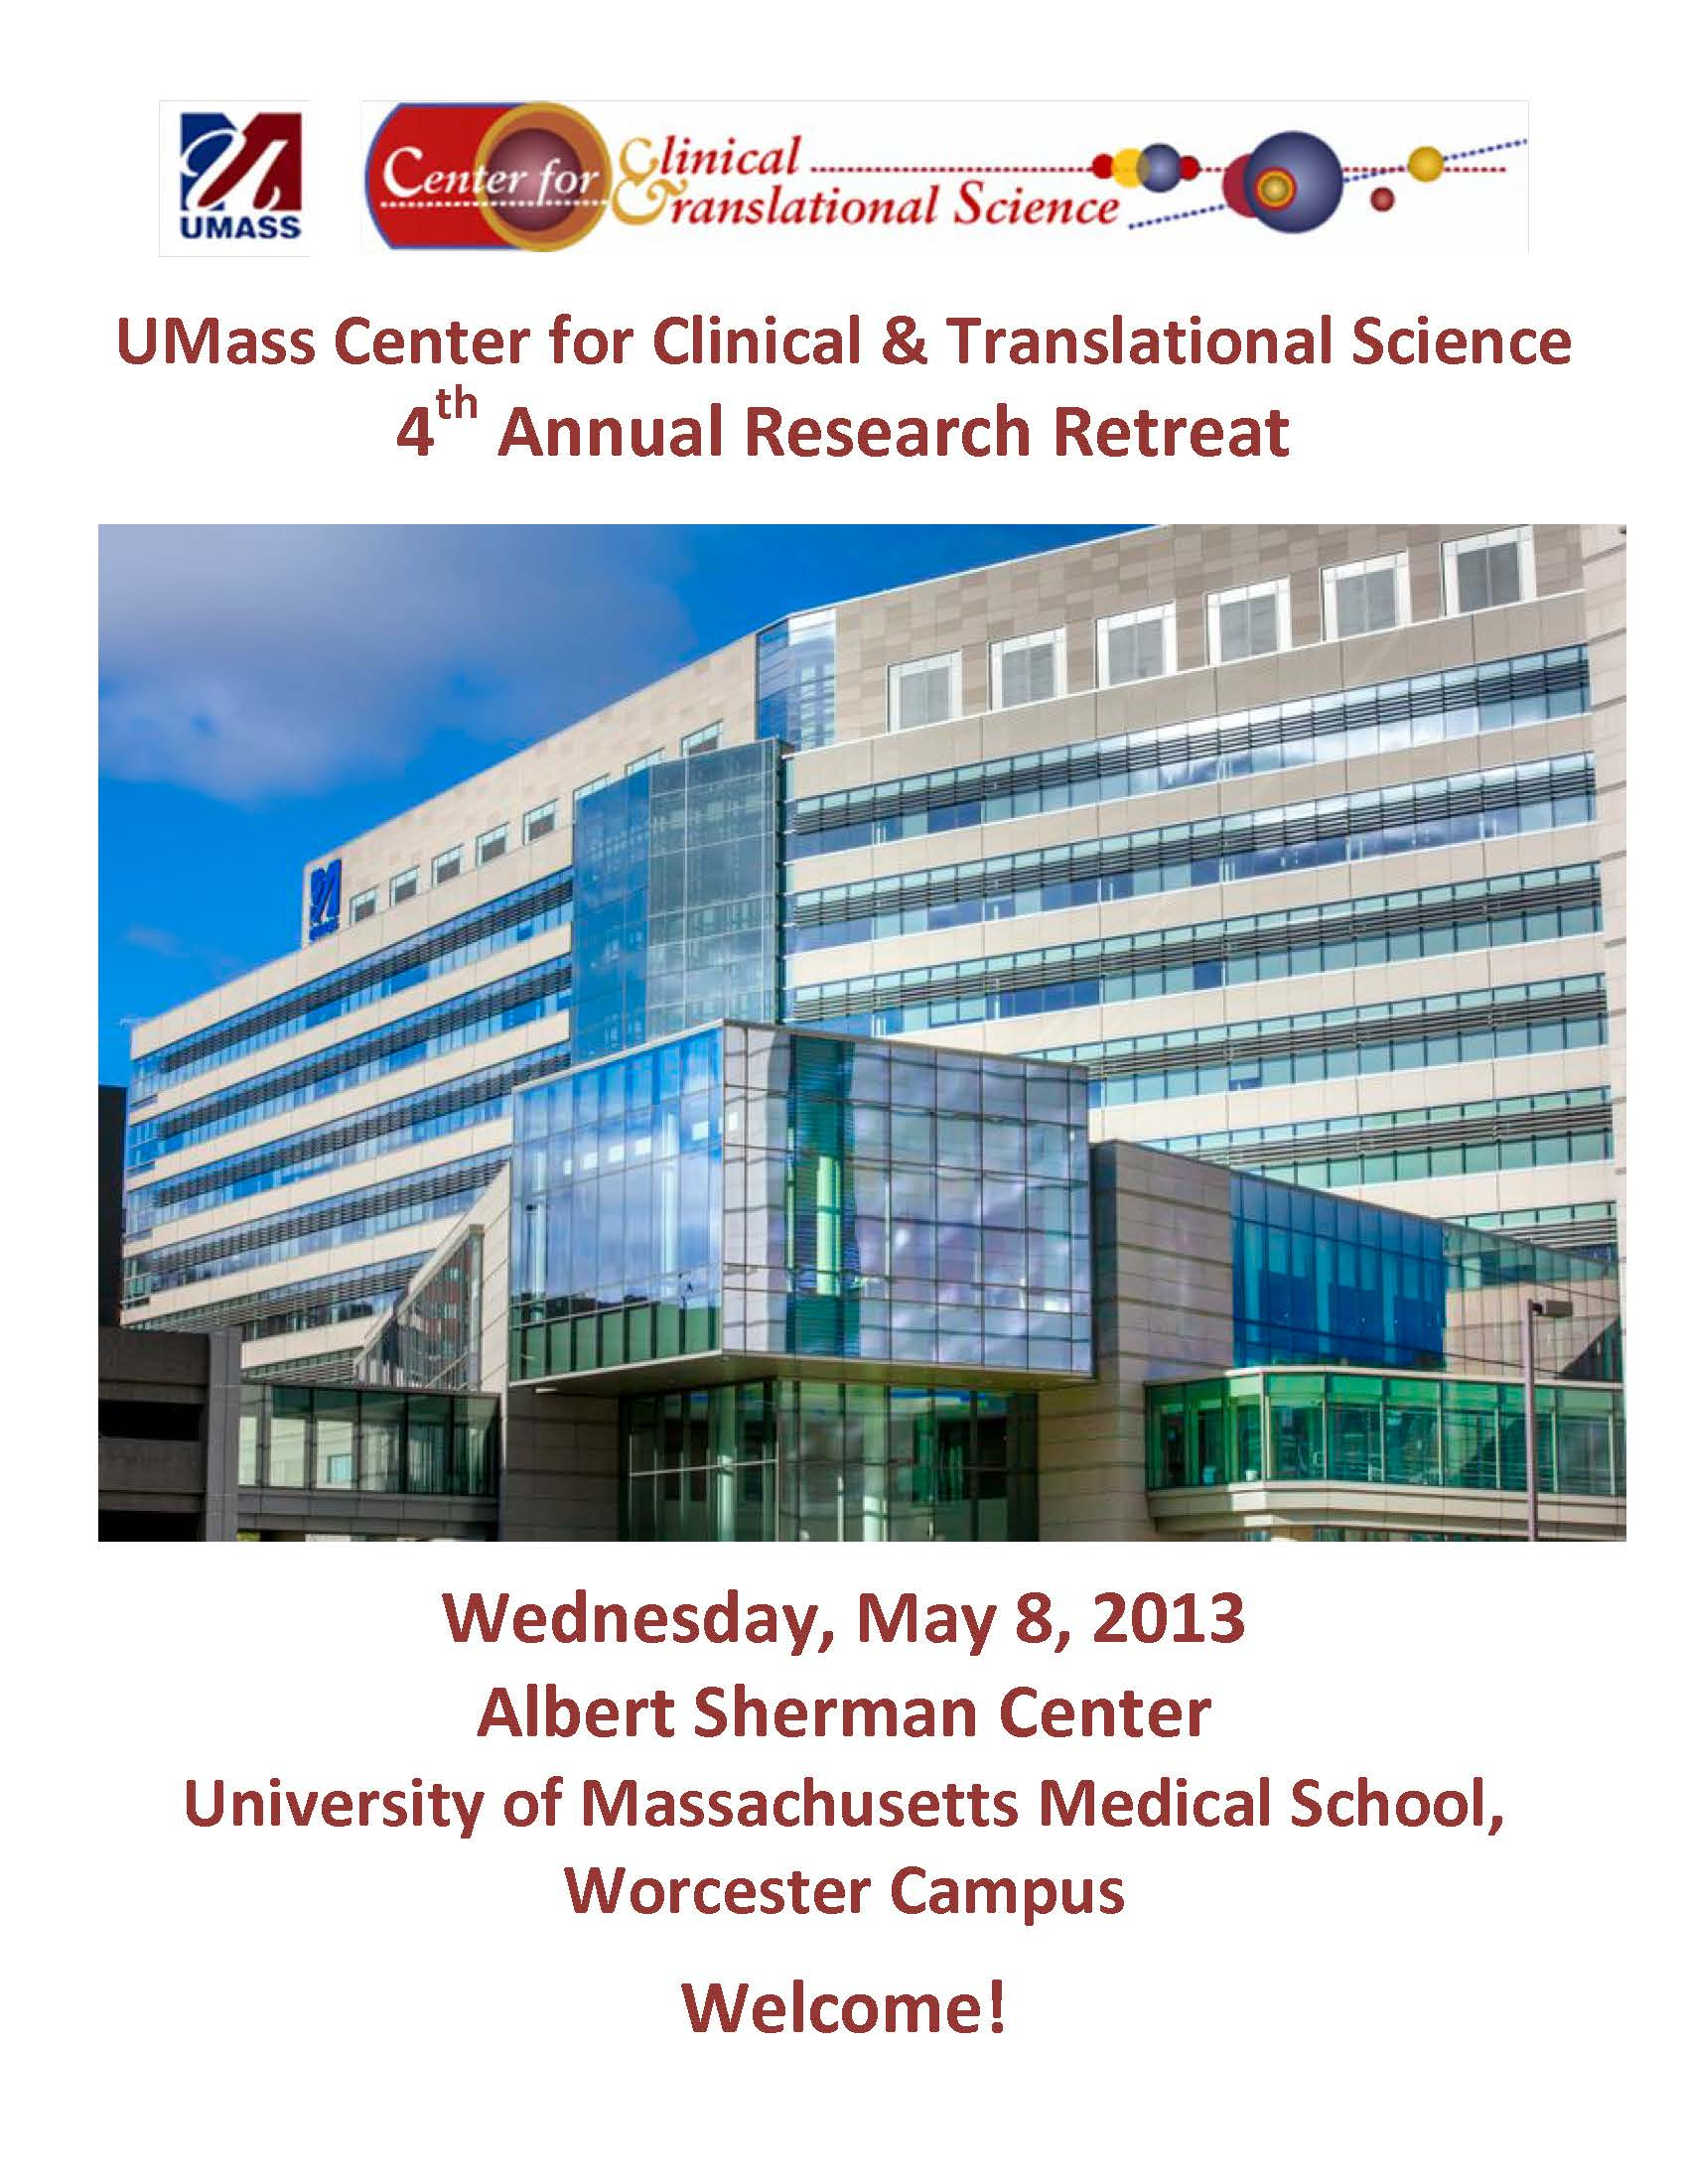 2013 UMass Center for Clinical and Translational Science Research Retreat